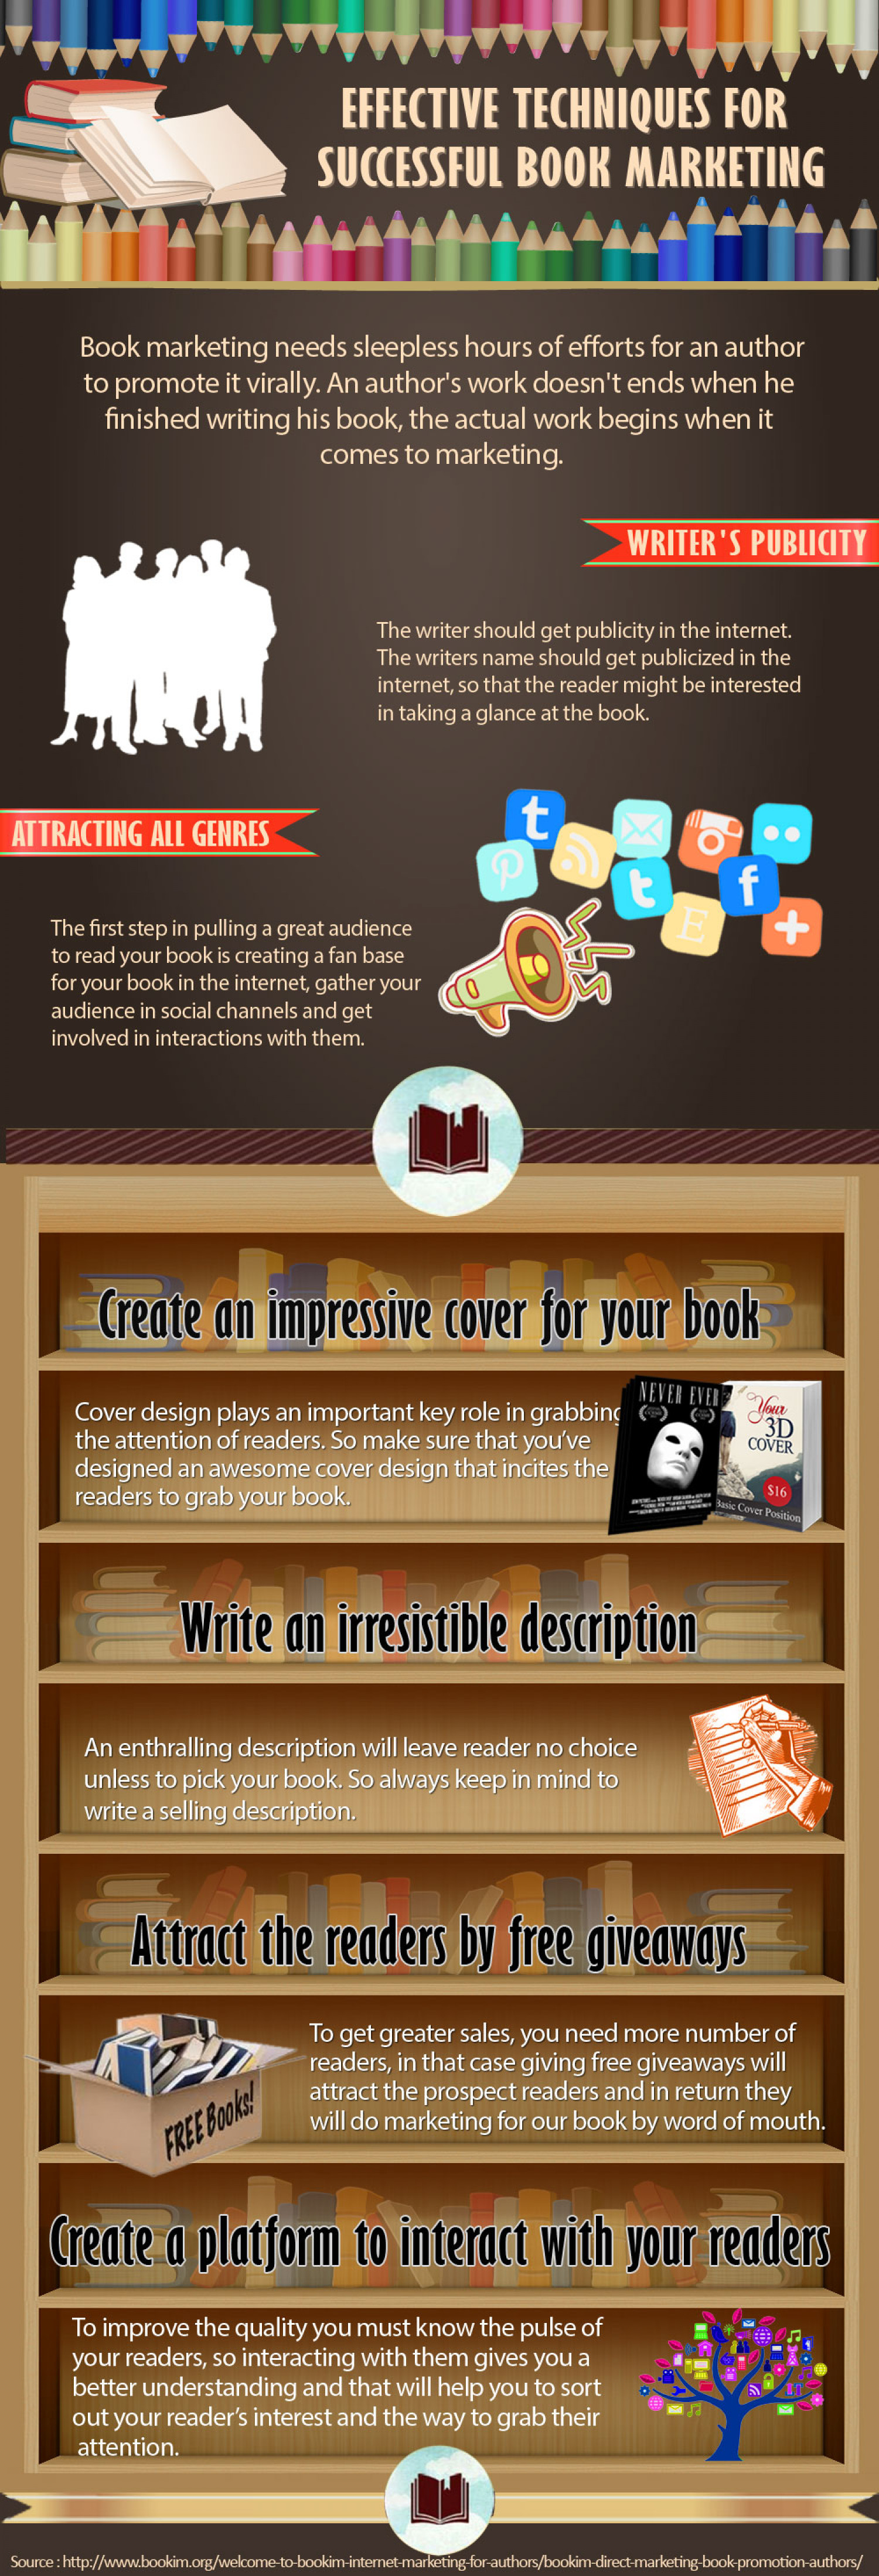 Effective Techniques for Successful Book Marketing Infographic